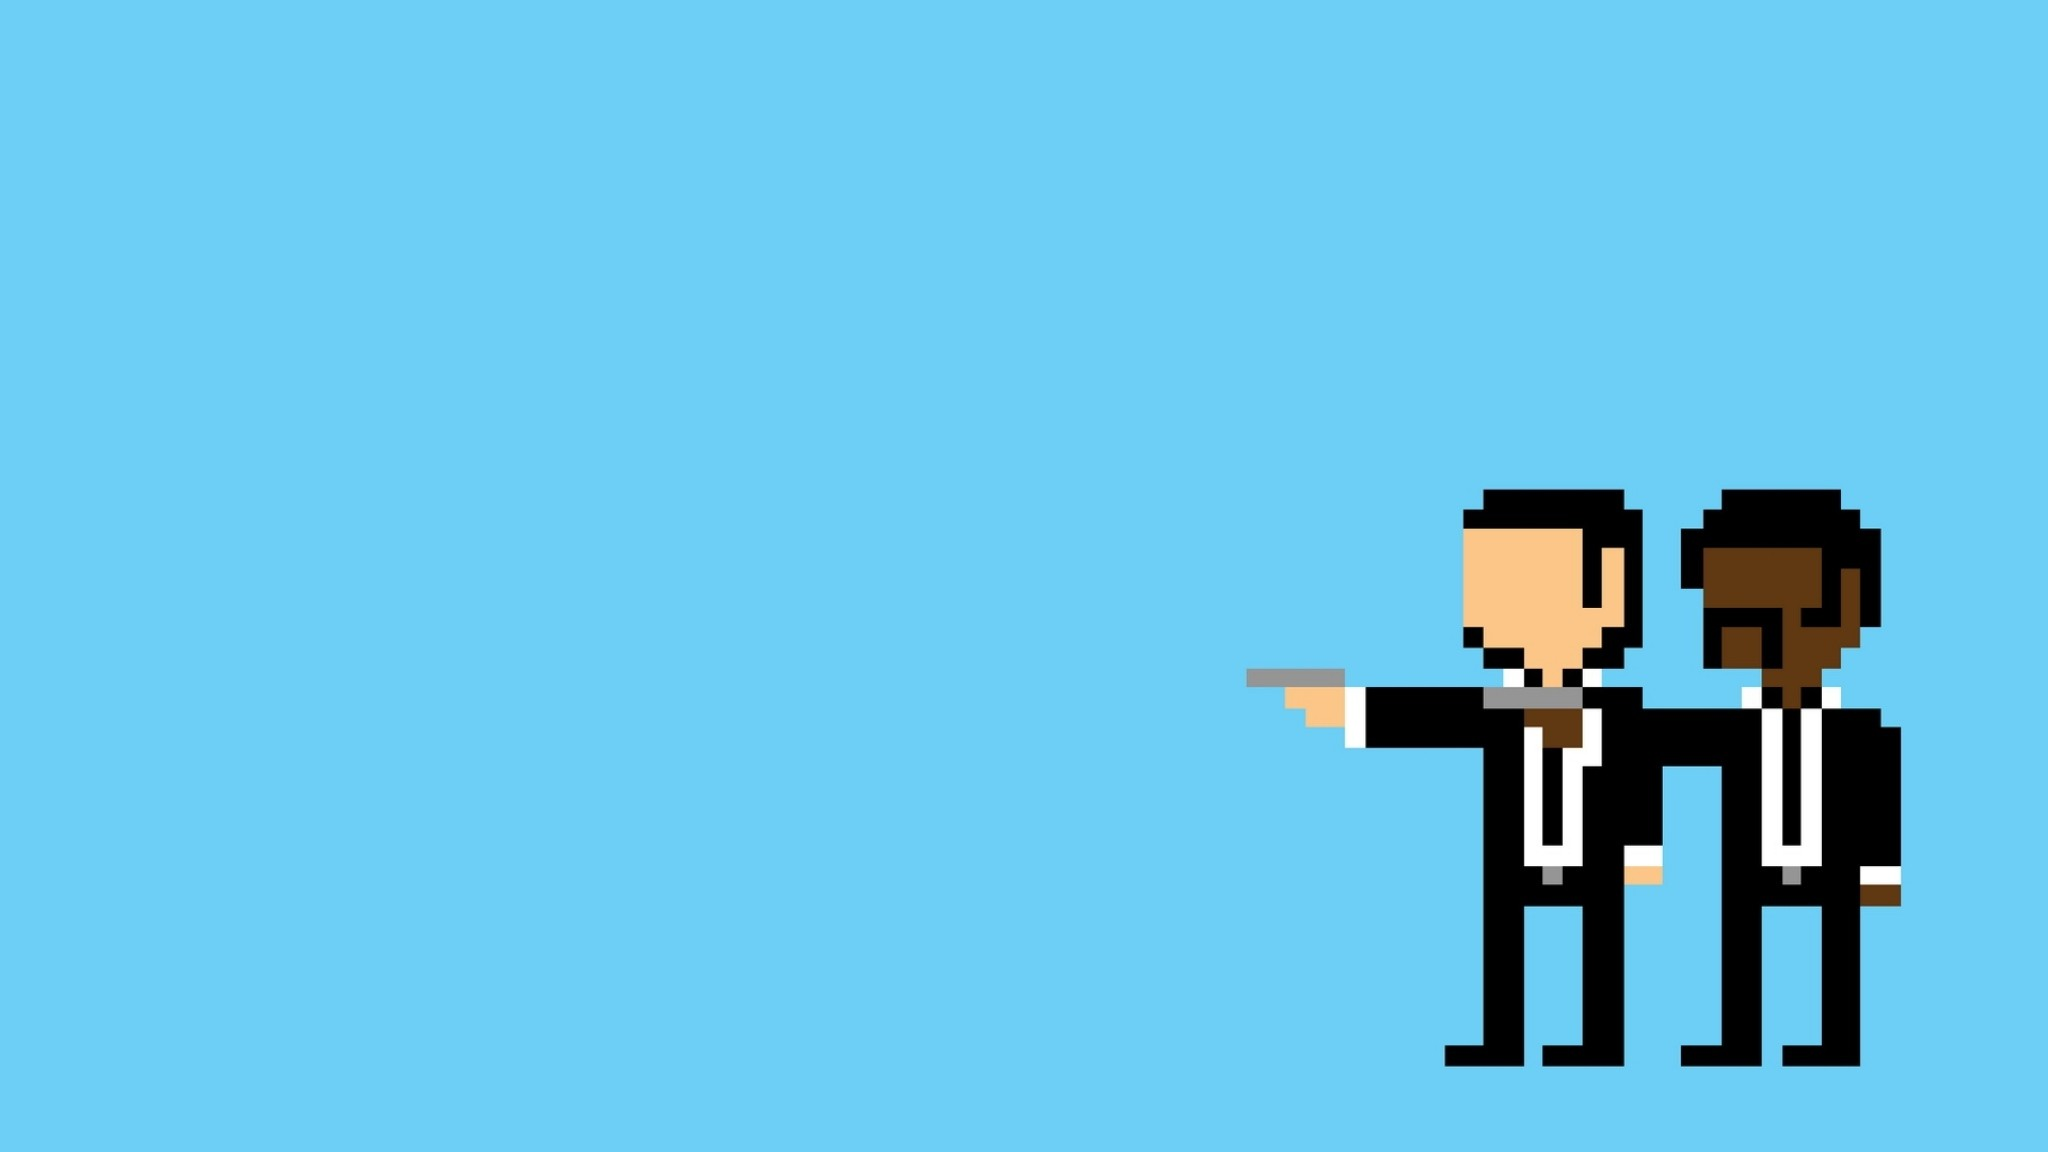 2048x1152 Preview wallpaper pulp pixel, people, minimalism, pulp fiction